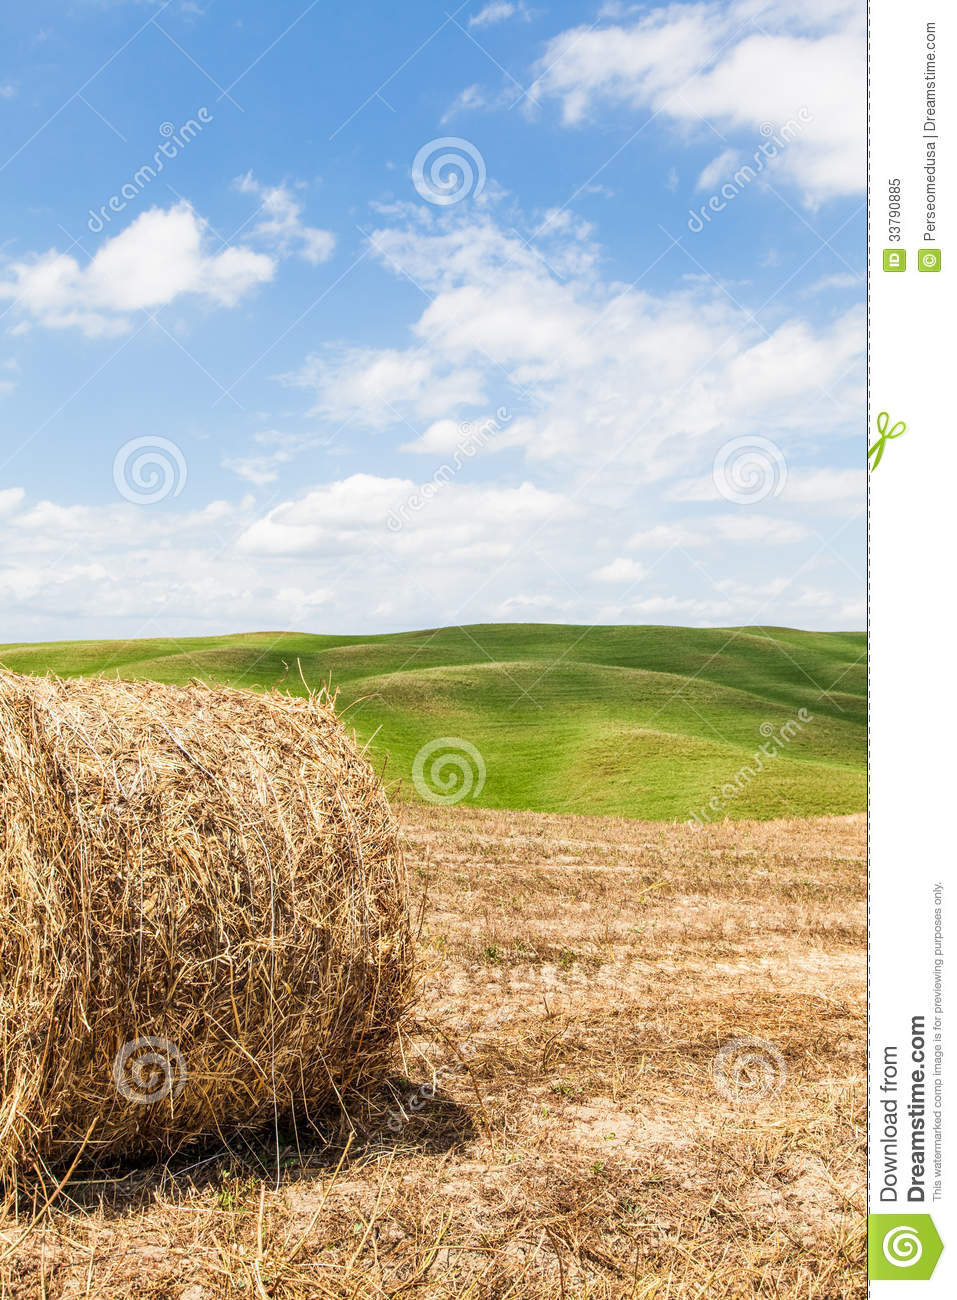 Tuscany Agriculture Royalty Free Stock Photo - Image: 33790885